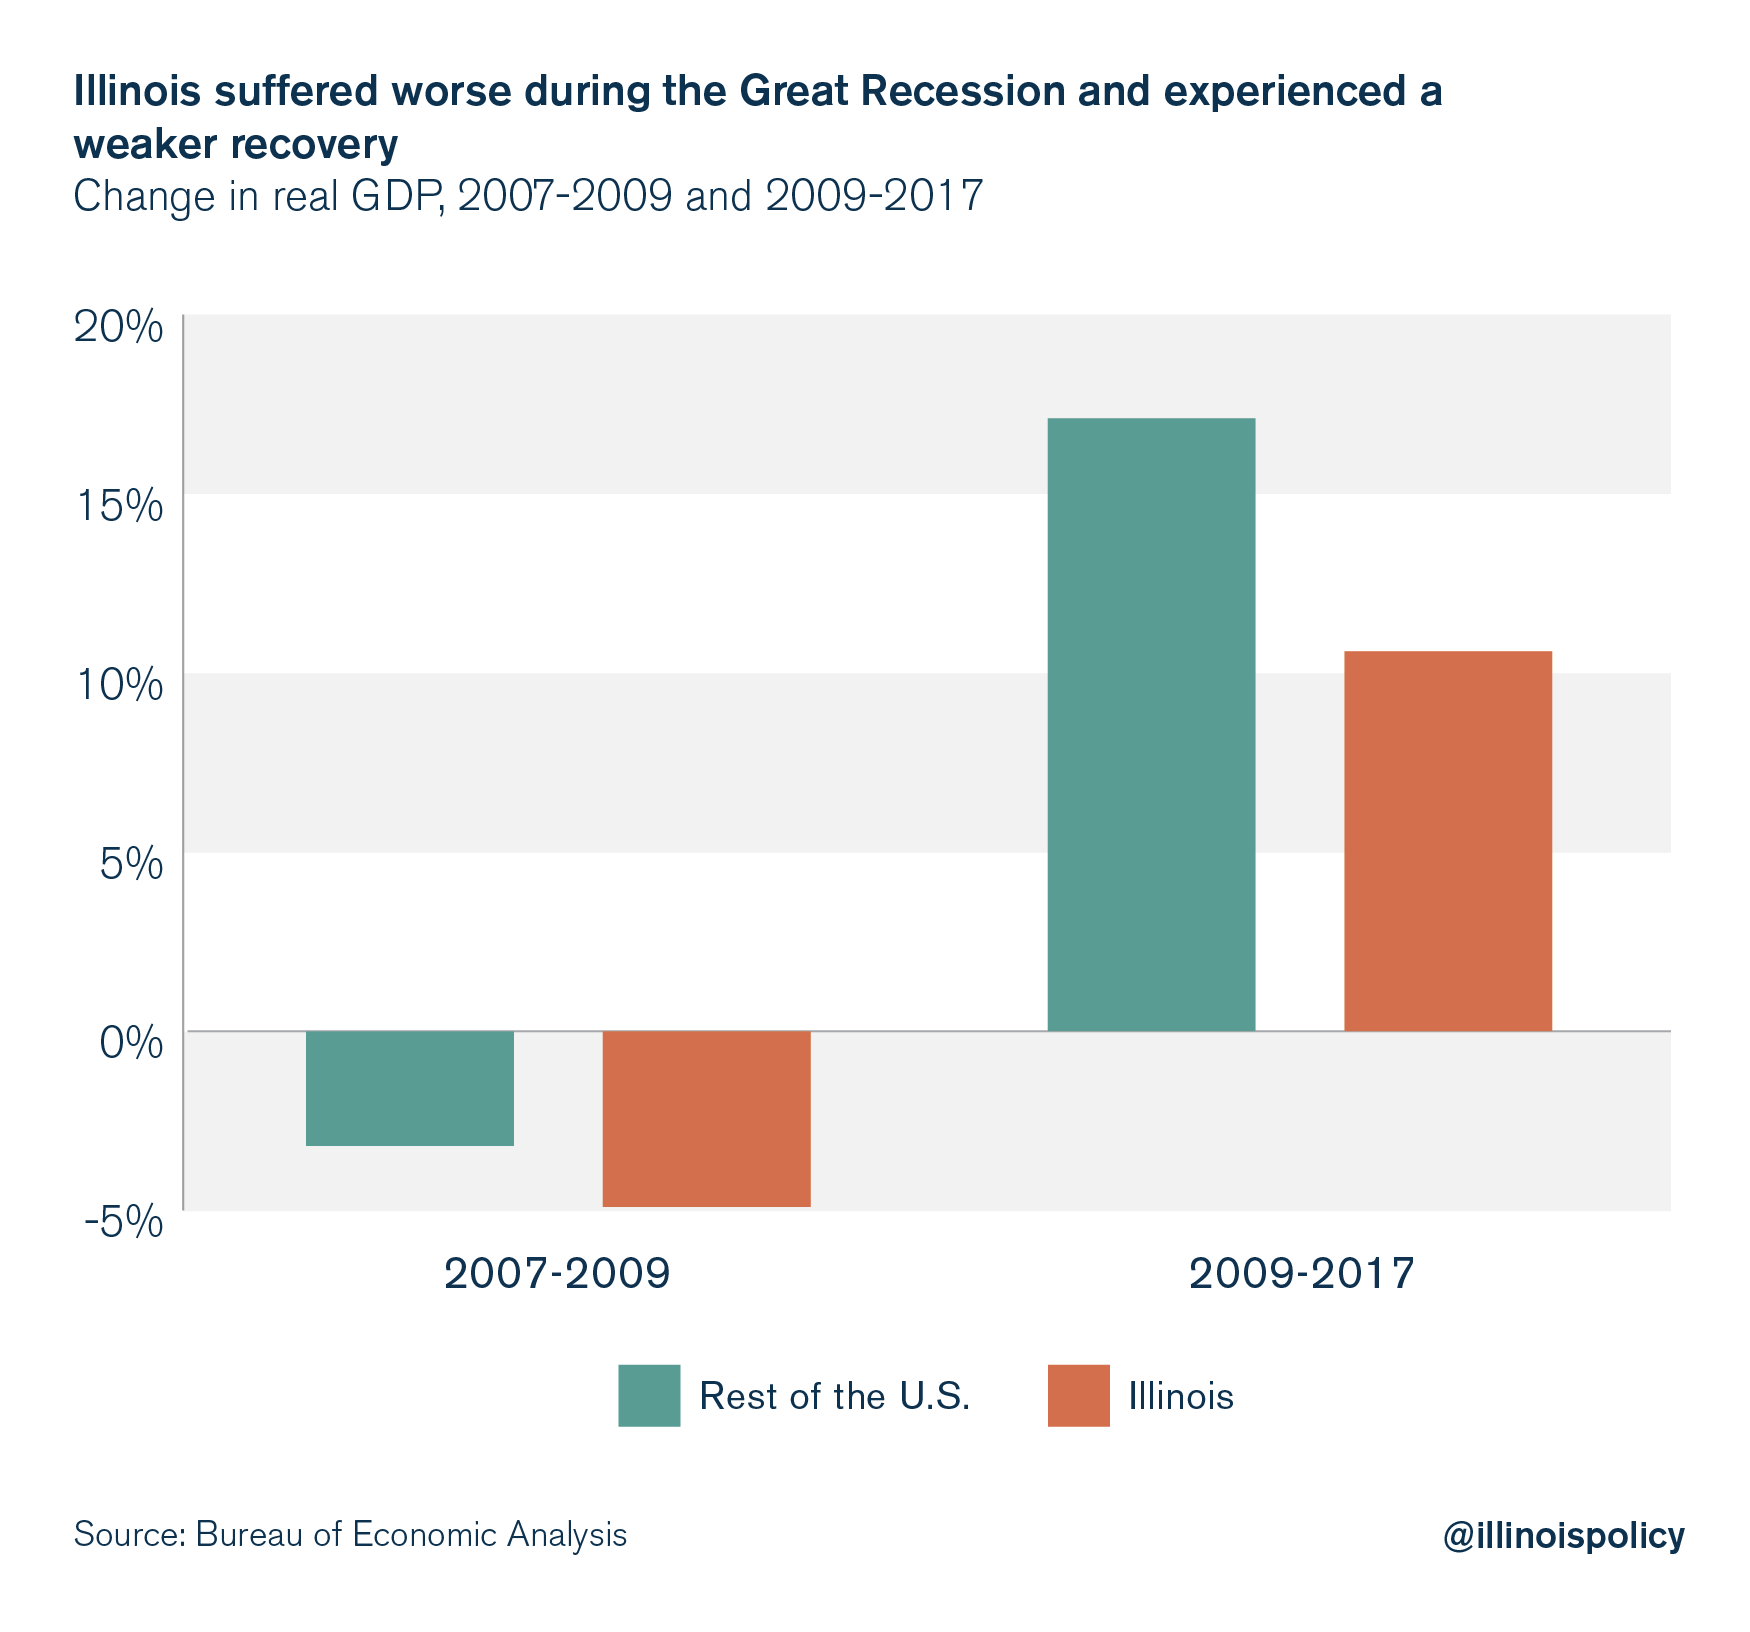 Illinois suffered worse during the Great Recession and experienced a weaker recovery